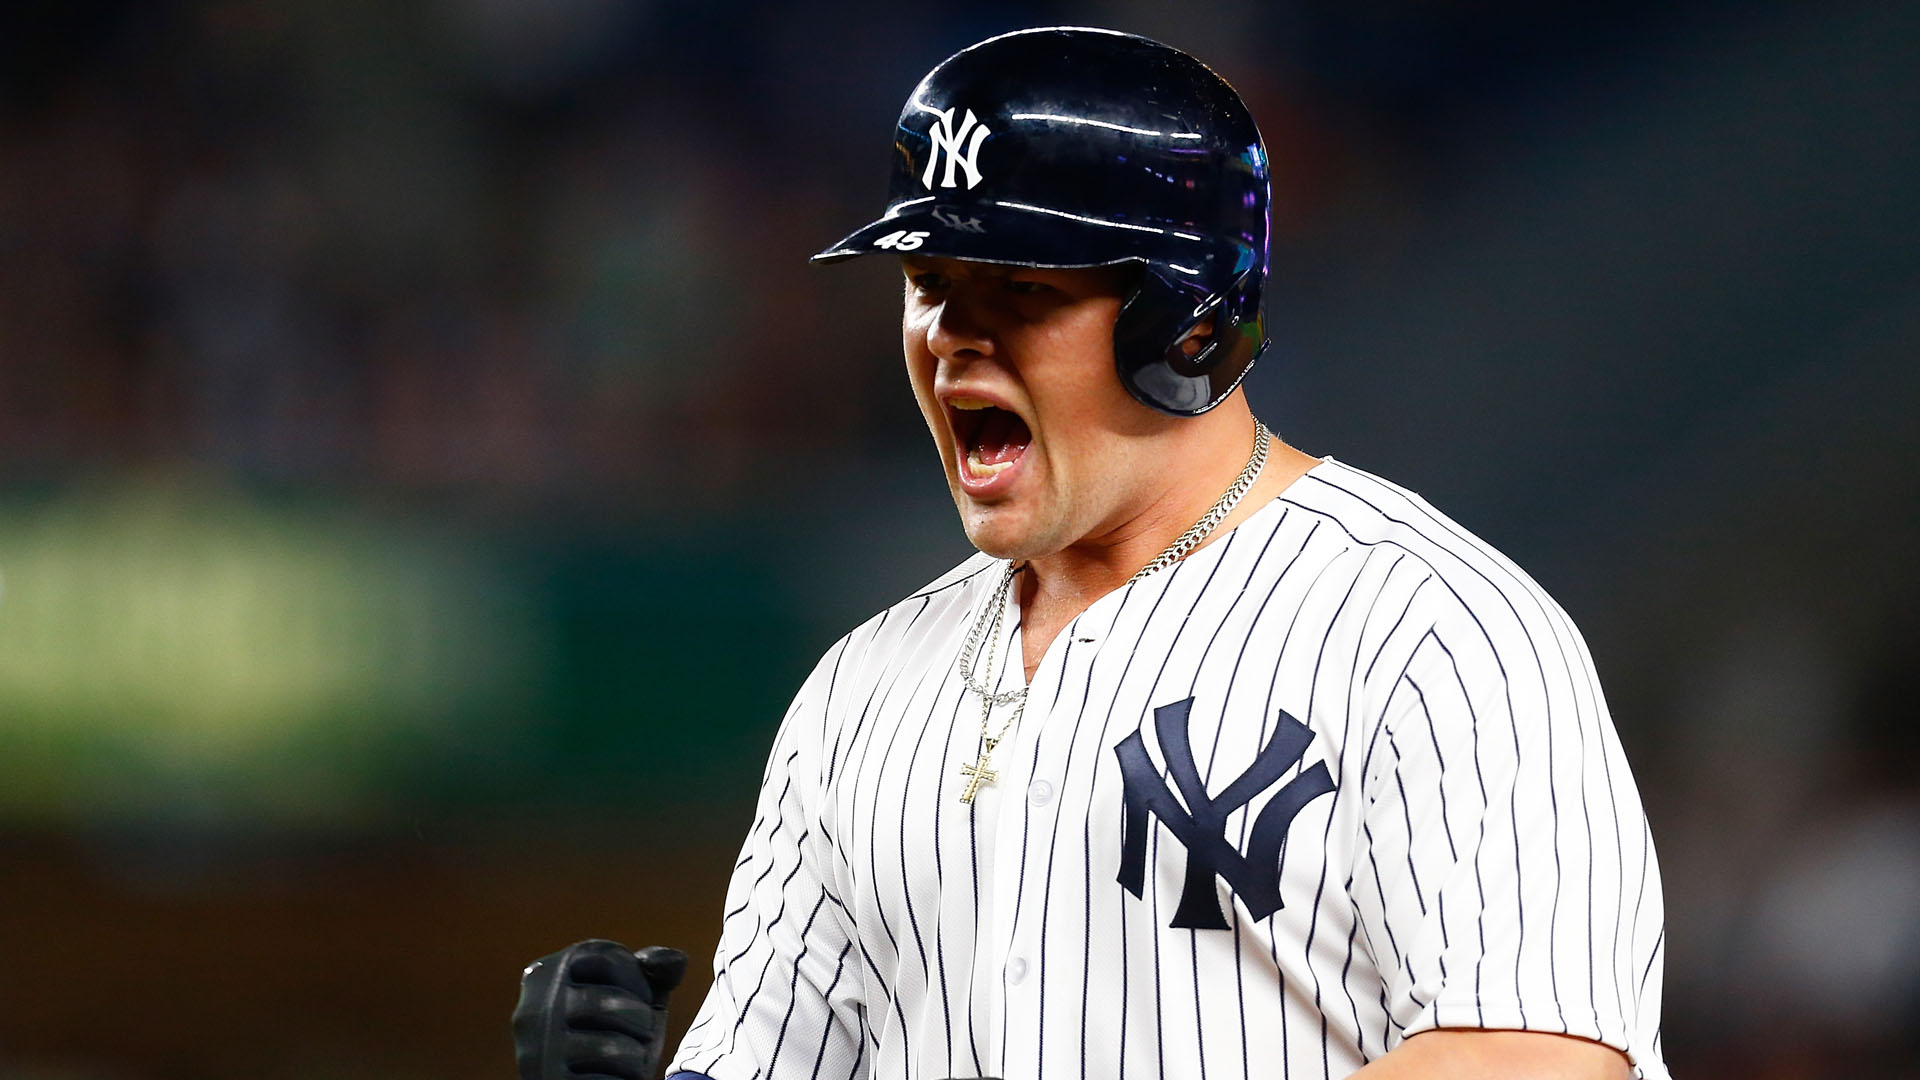 ALDS Game 2: Yankees 3, Sox 1